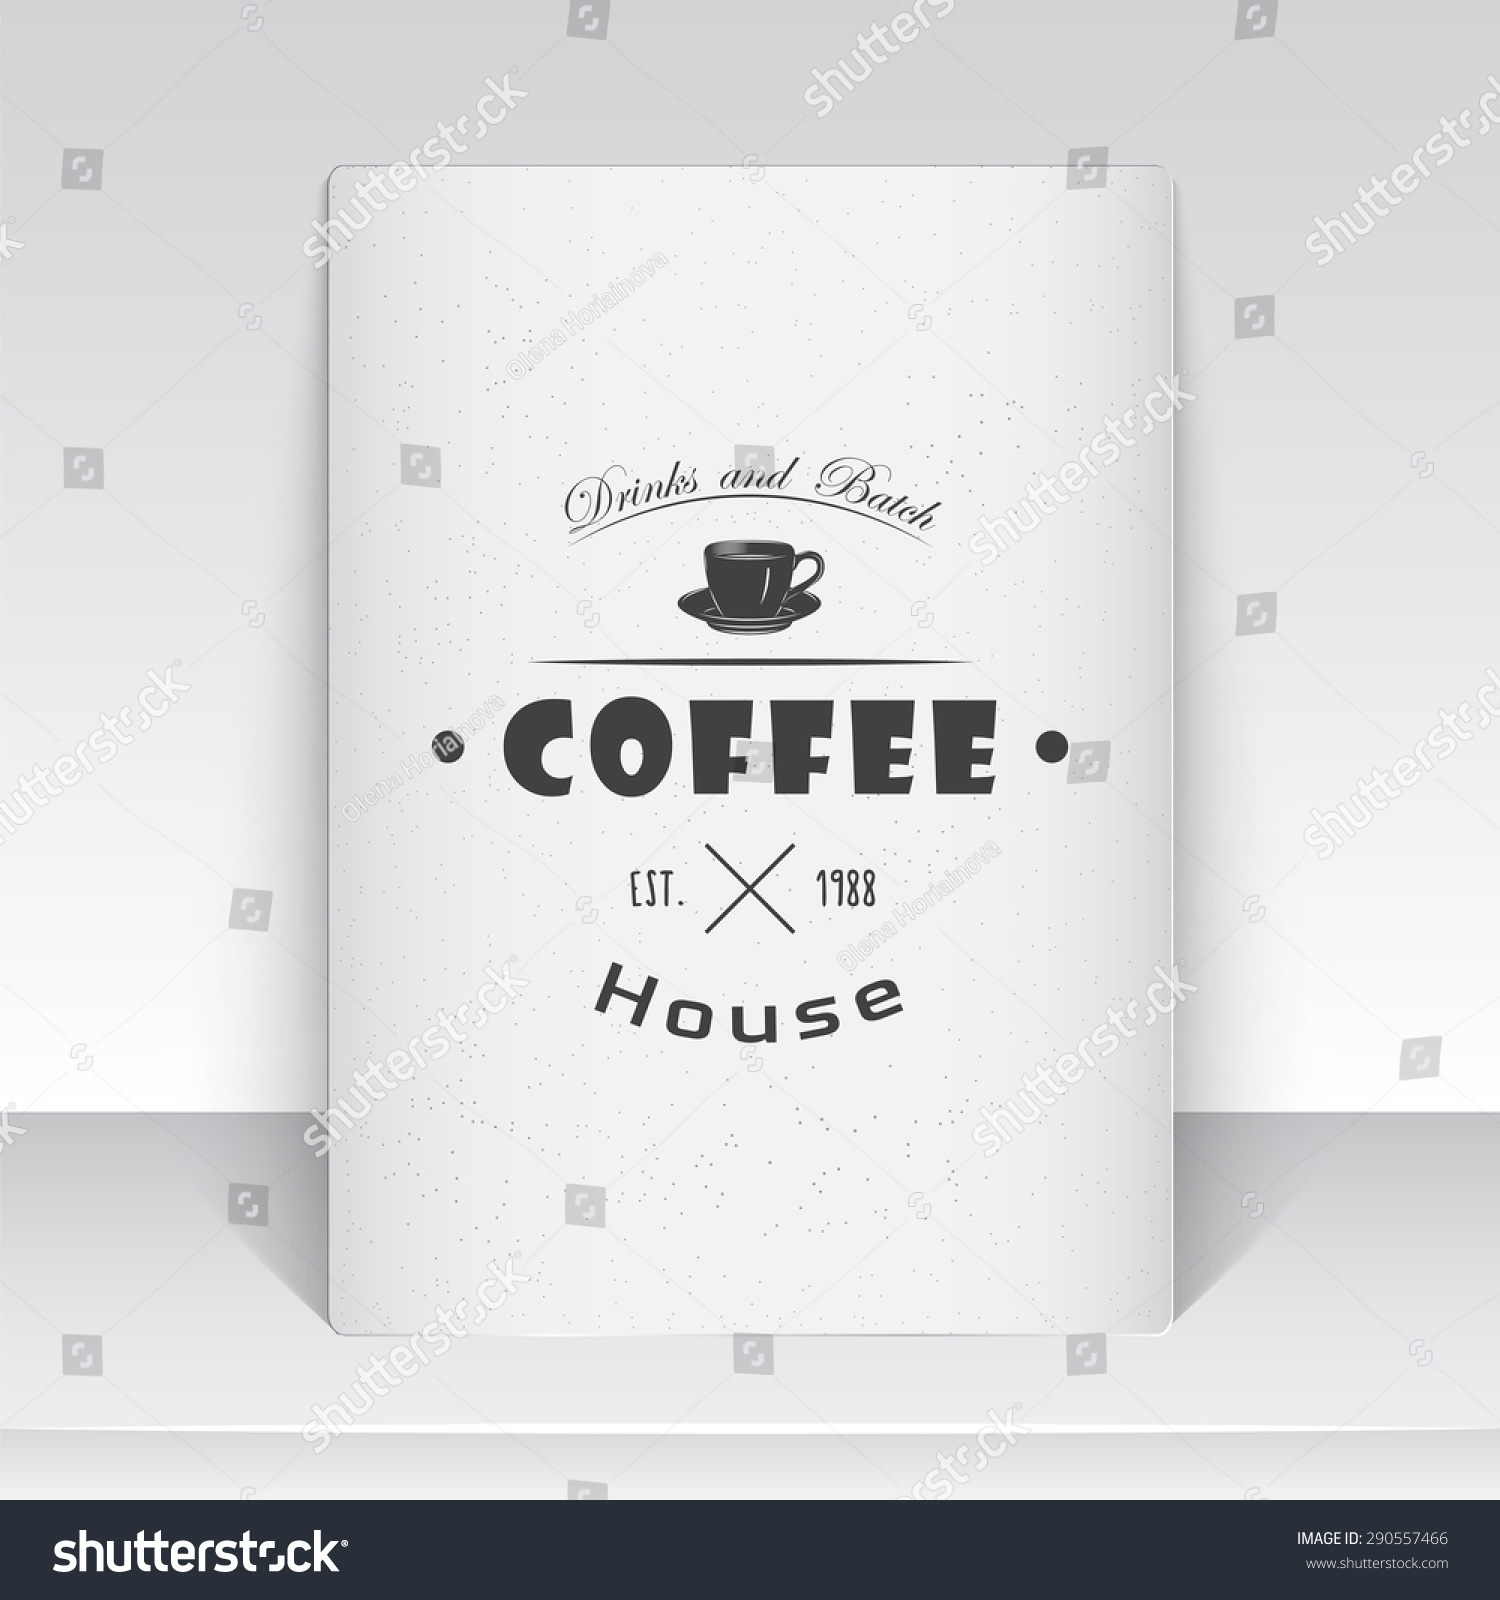 Coffee Shop Cafe Food Service Old Stock Vector 290557466 - Shutterstock